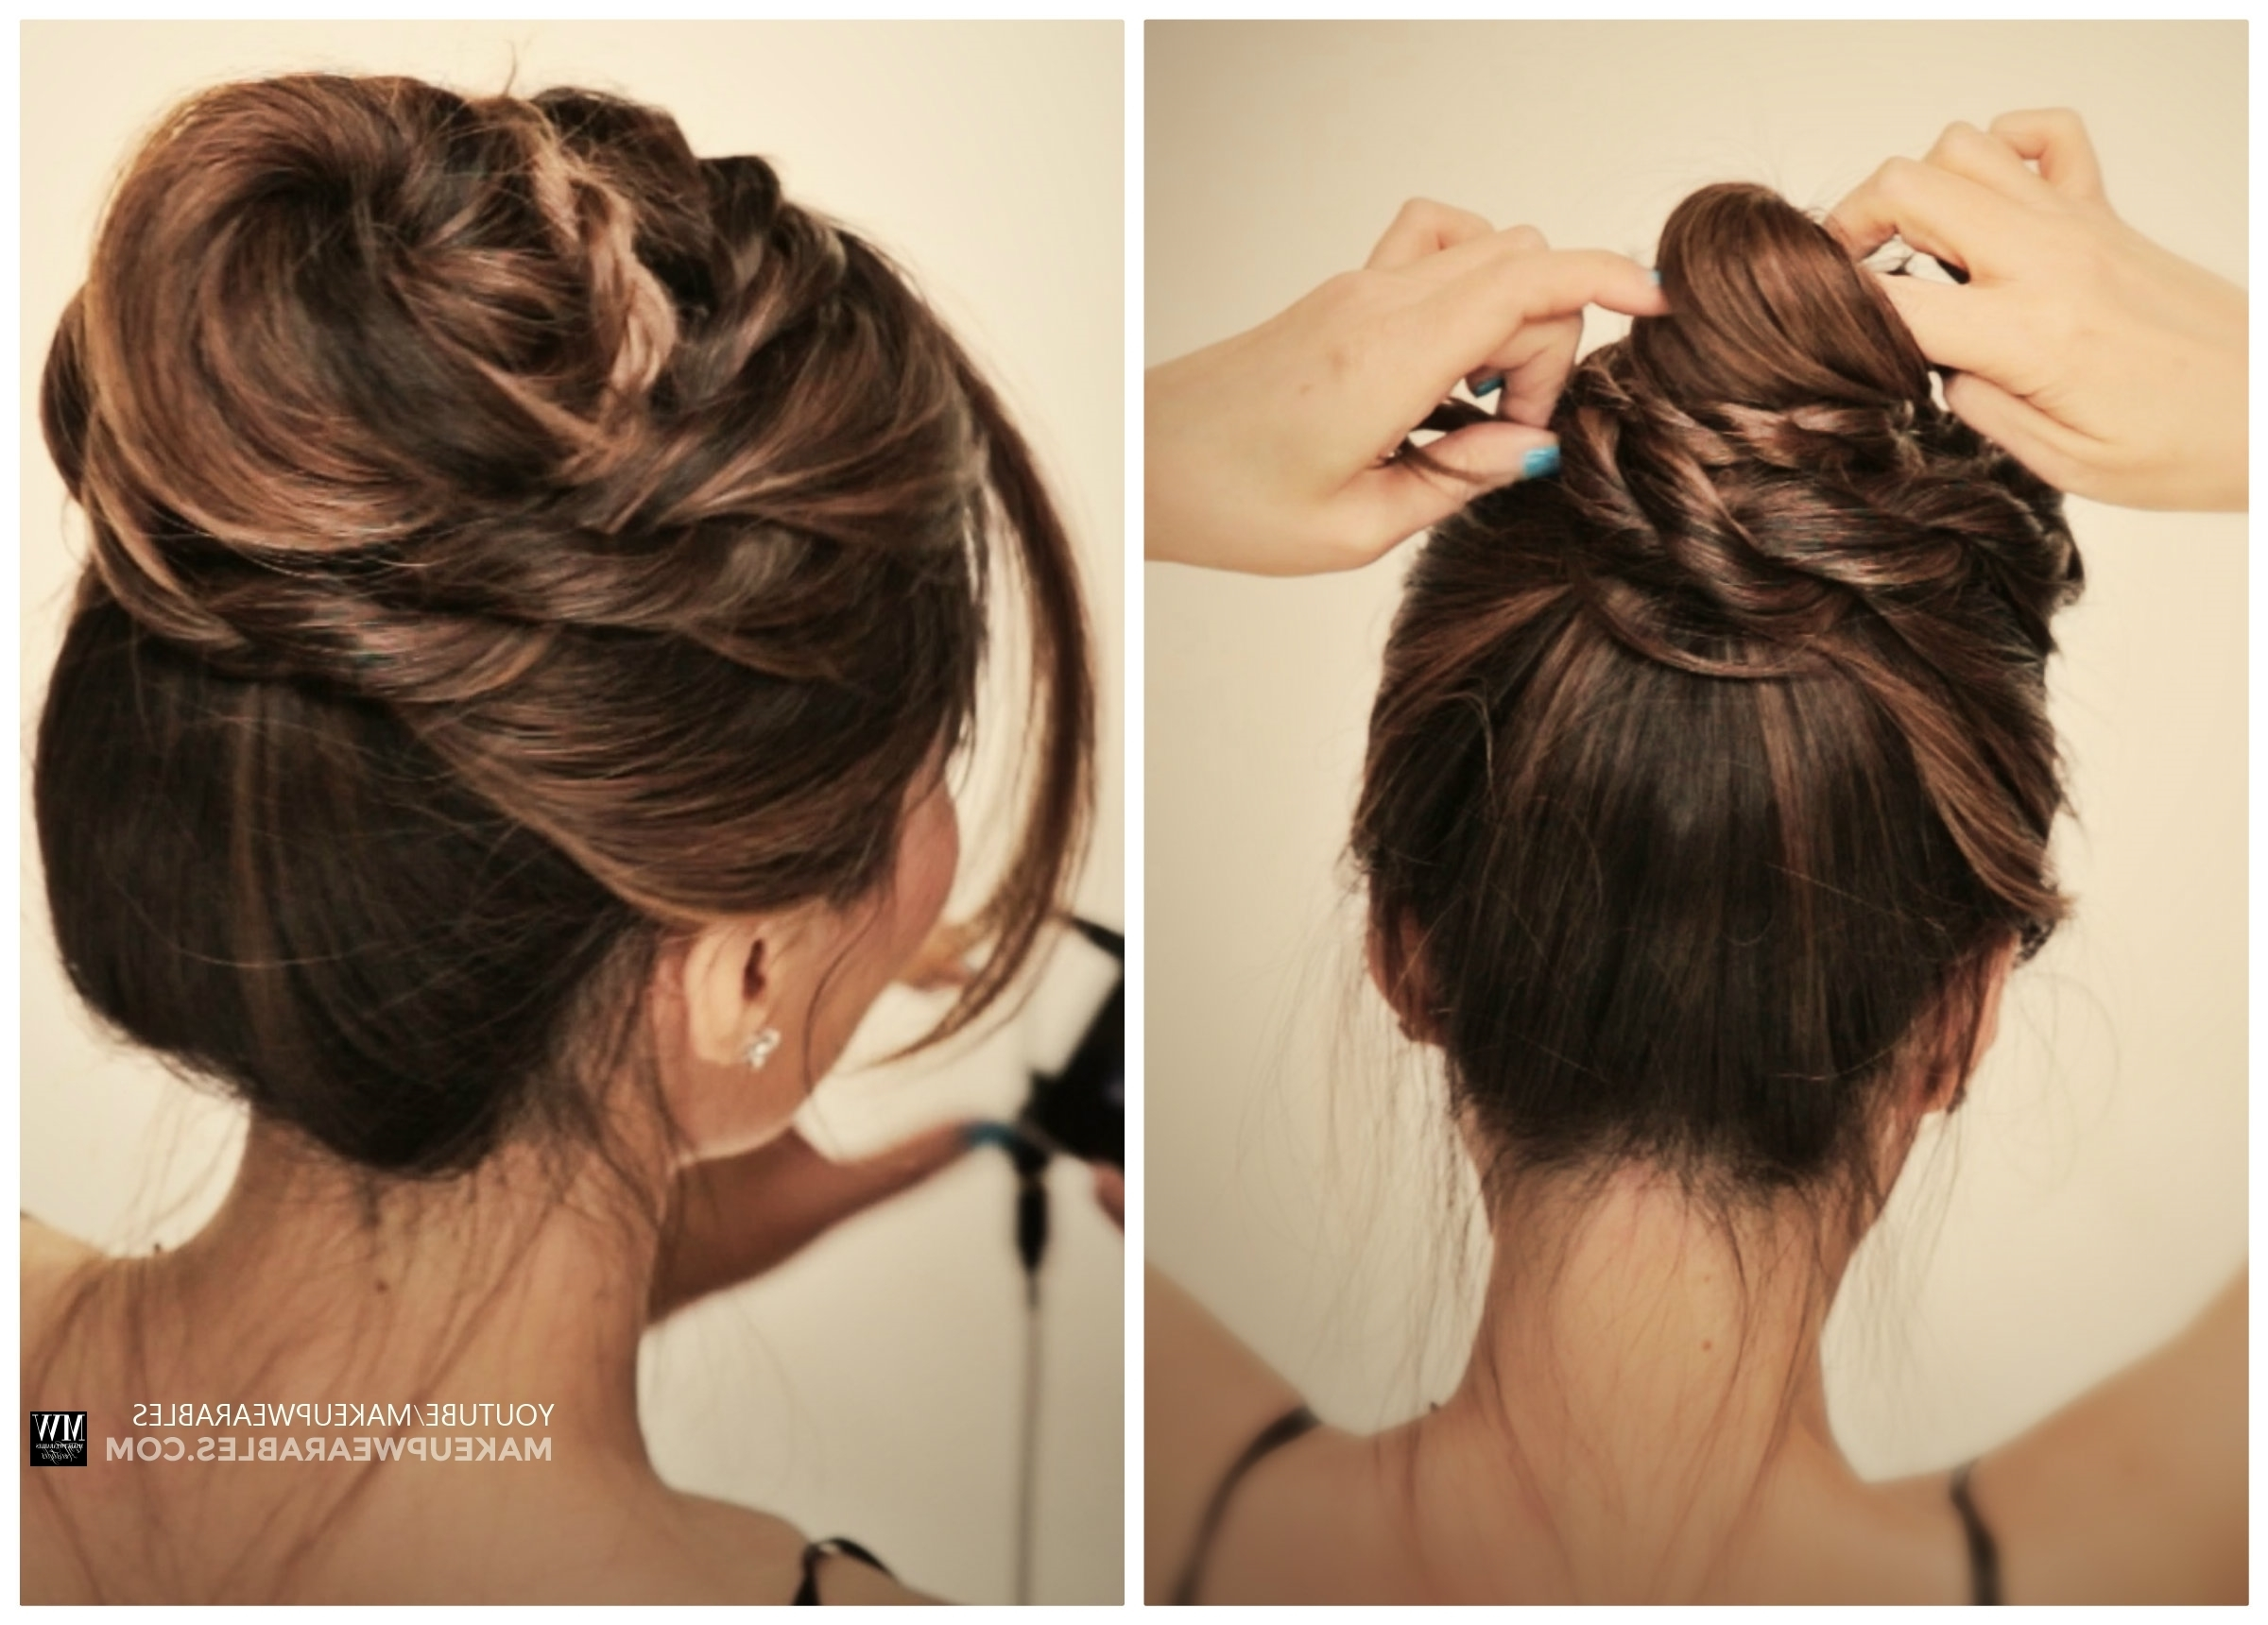 How To: 5 Amazingly Cute + Easy Hairstyles With A Simple Twist Regarding Easy To Do Updo Hairstyles For Long Hair (View 8 of 15)